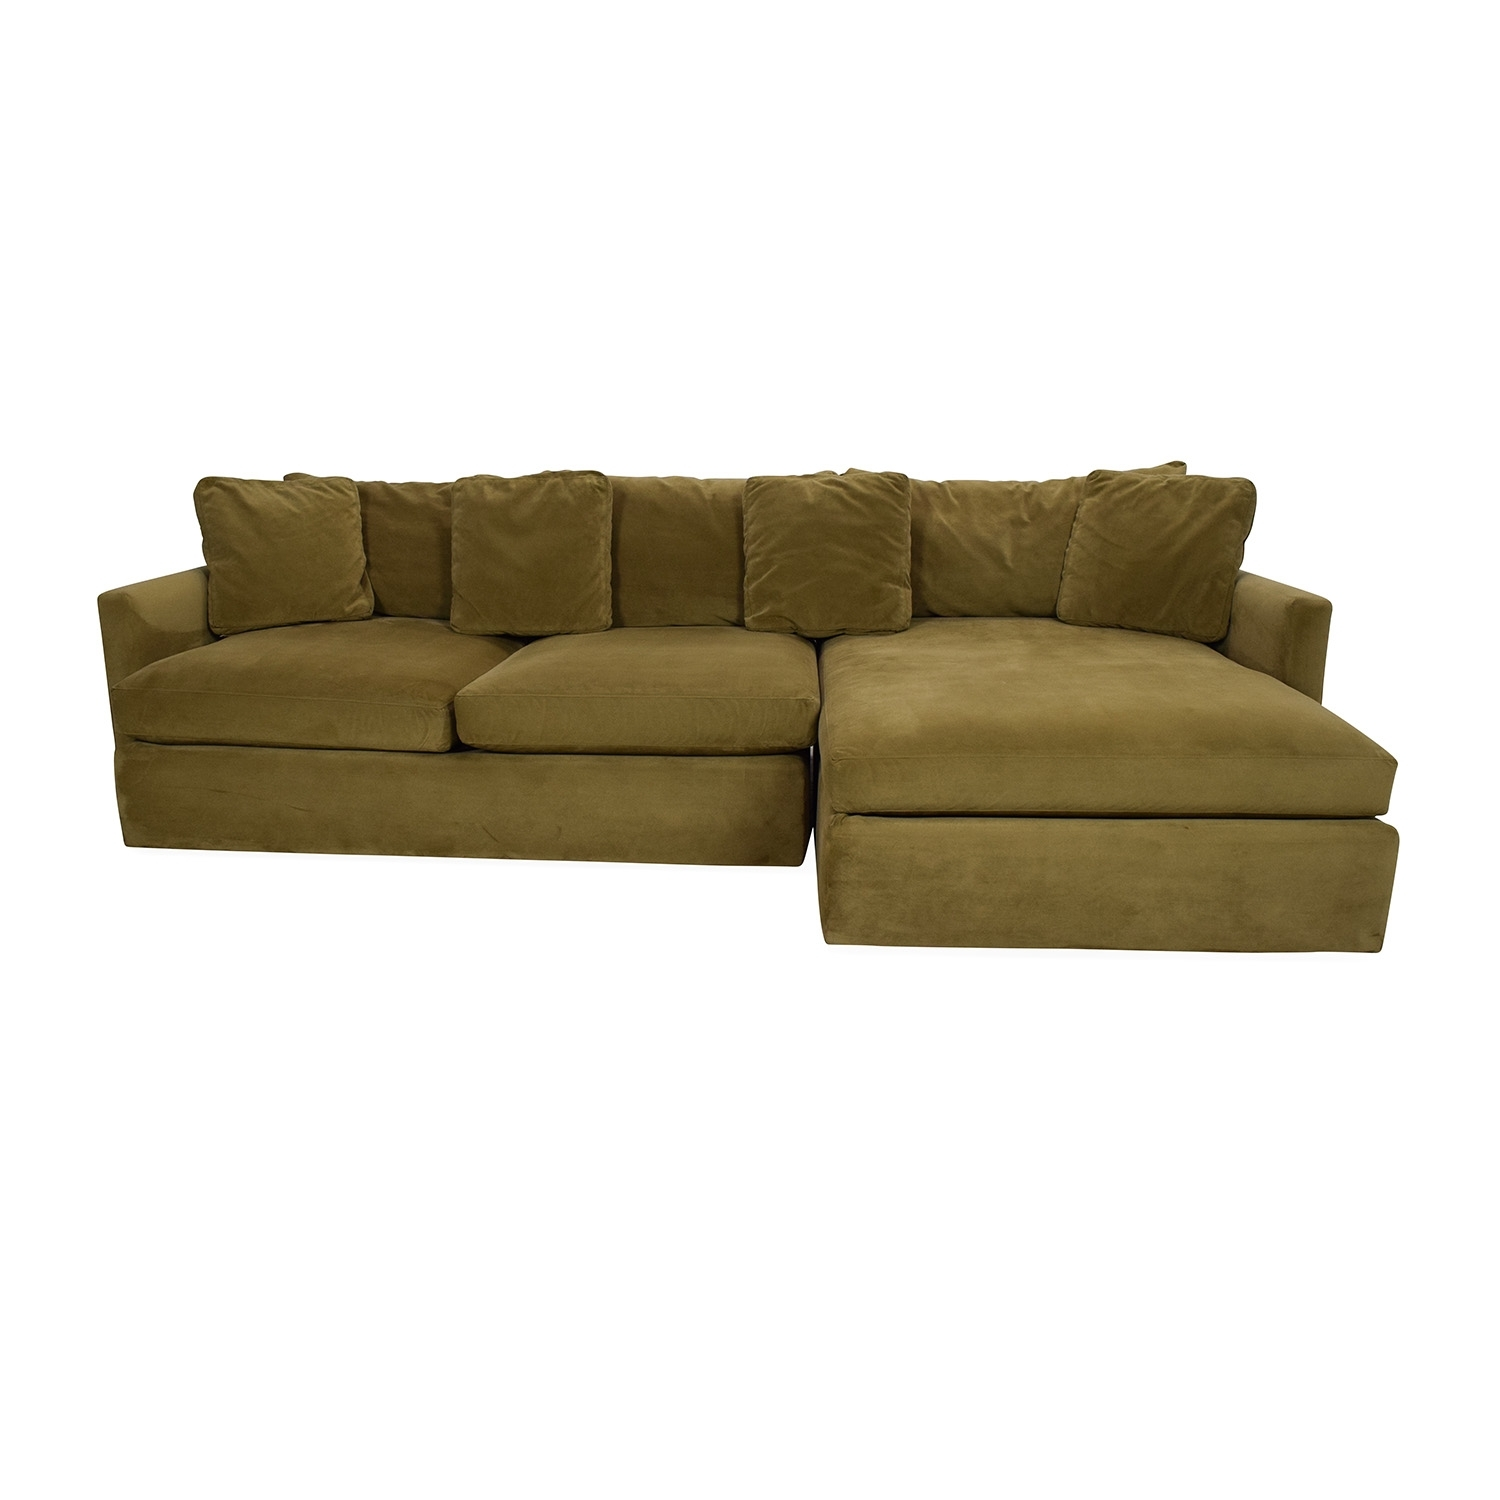 65% Off   Crate And Barrel Crate And Barrel Lounge Ii Sectional Sofa Inside On Sale Sectional Sofas (Photo 9 of 10)